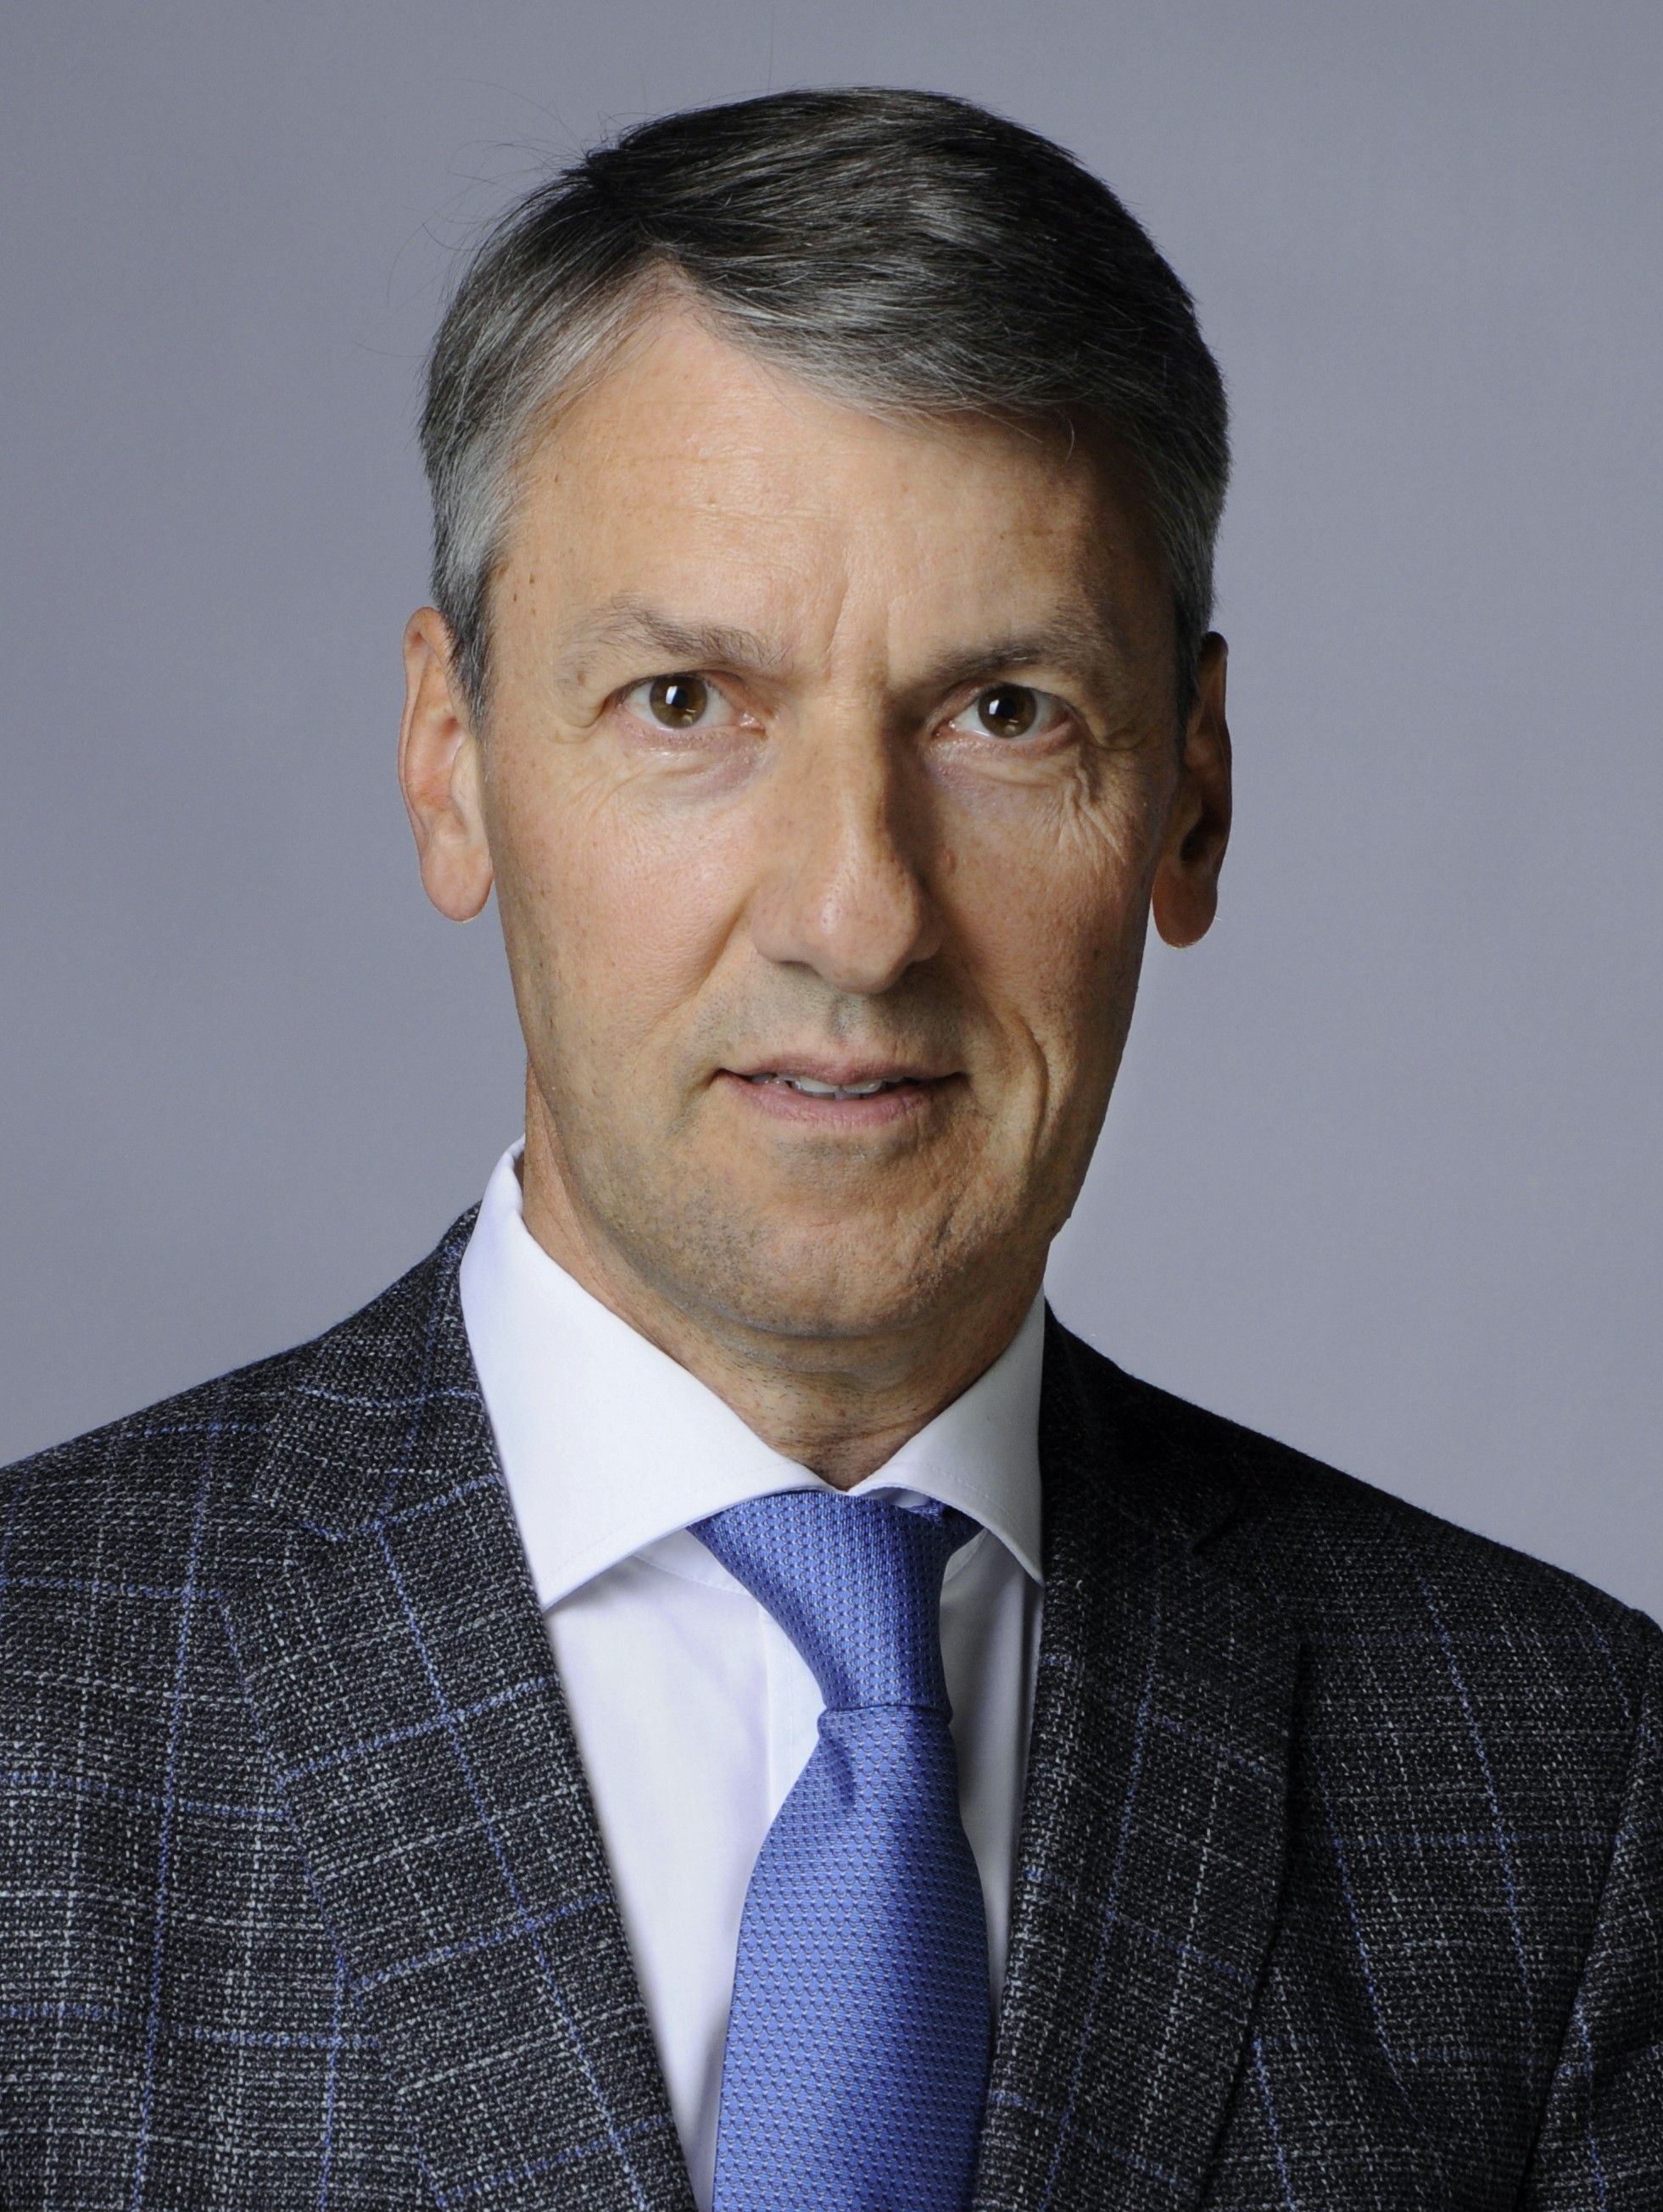 Dr. Peter Doetsch